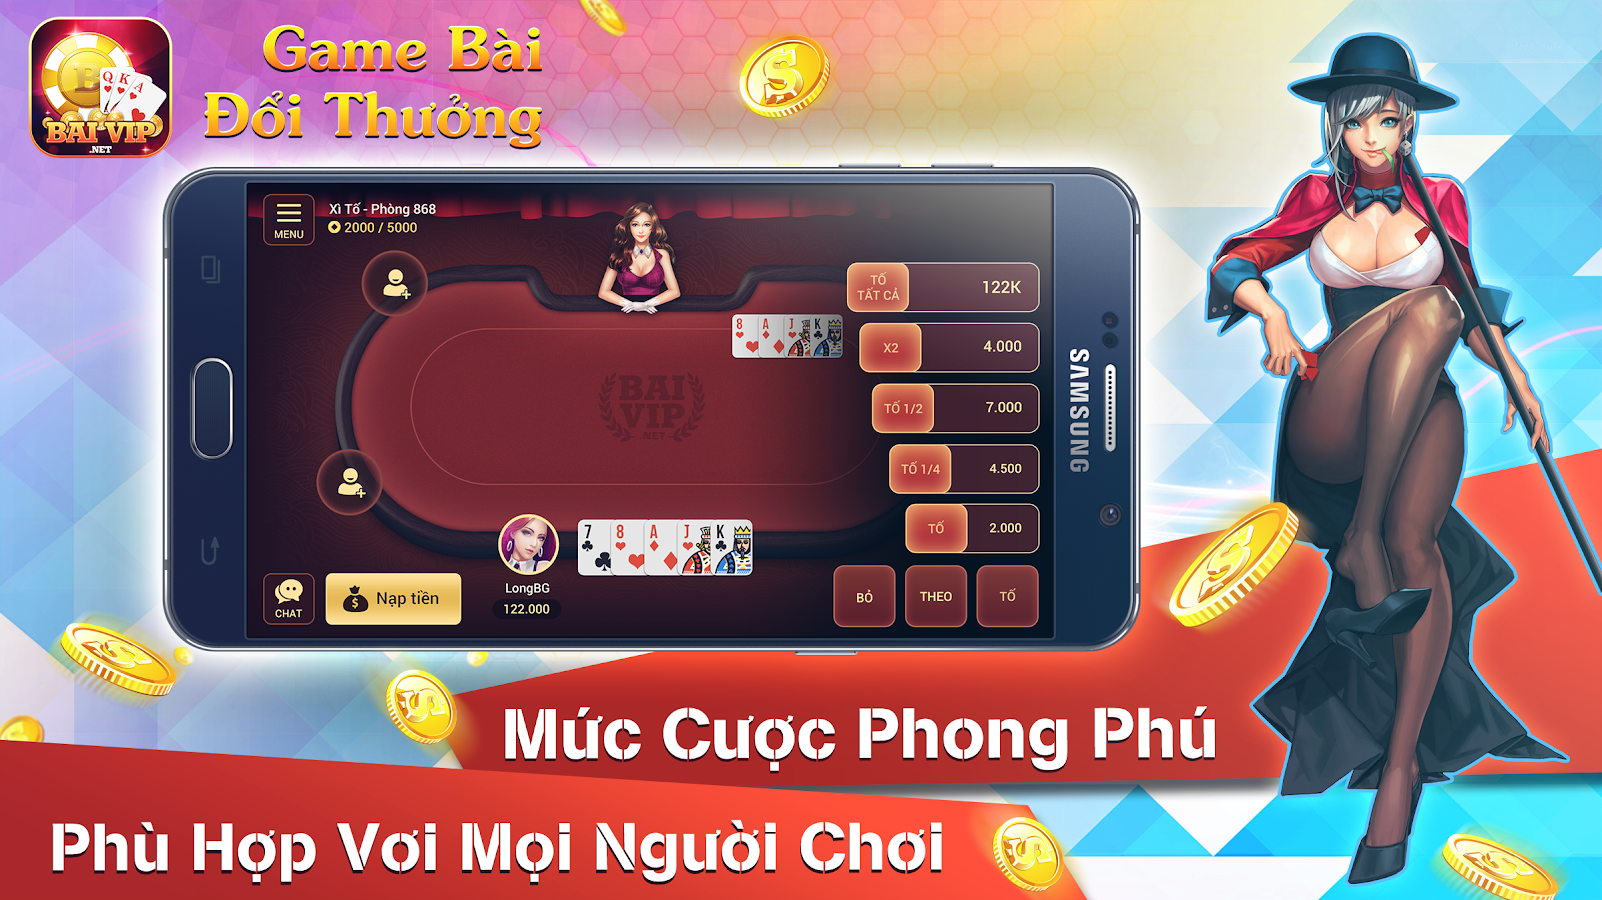 BaiVip - Game danh bai online Screenshot 2